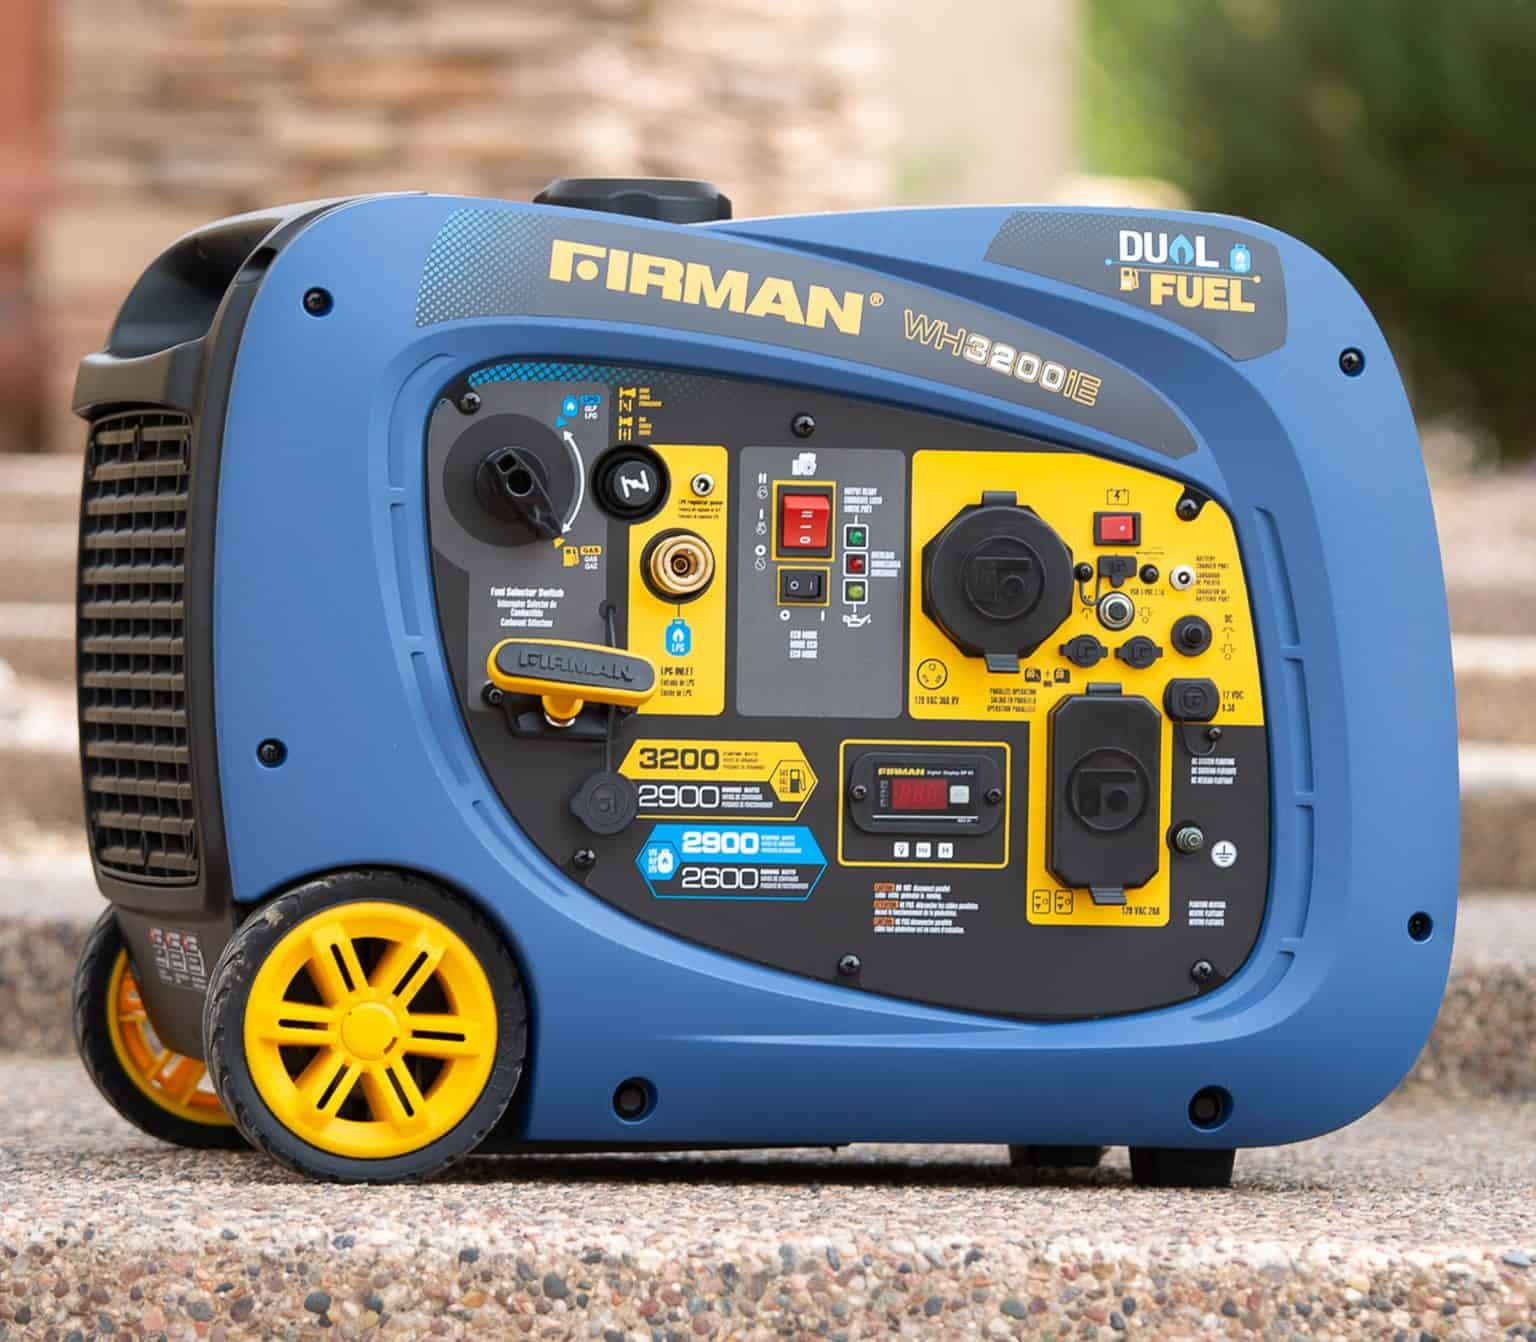 Inverter Generators Vs Generator – Which Is The Best?